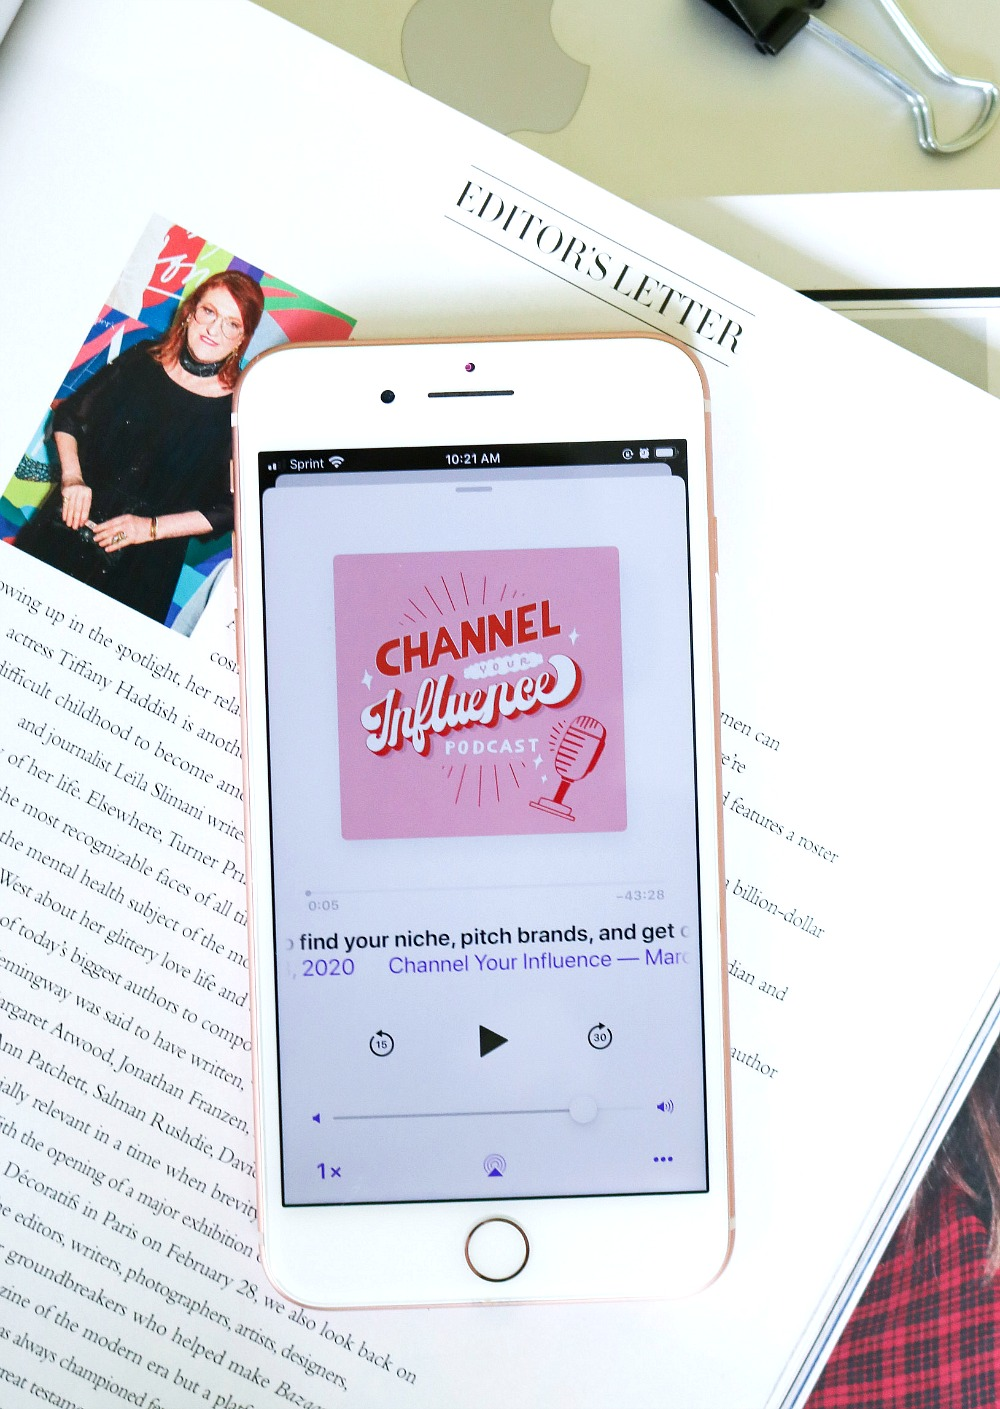 Inspiring Podcasts I Channel Your Influence by Diane Taha